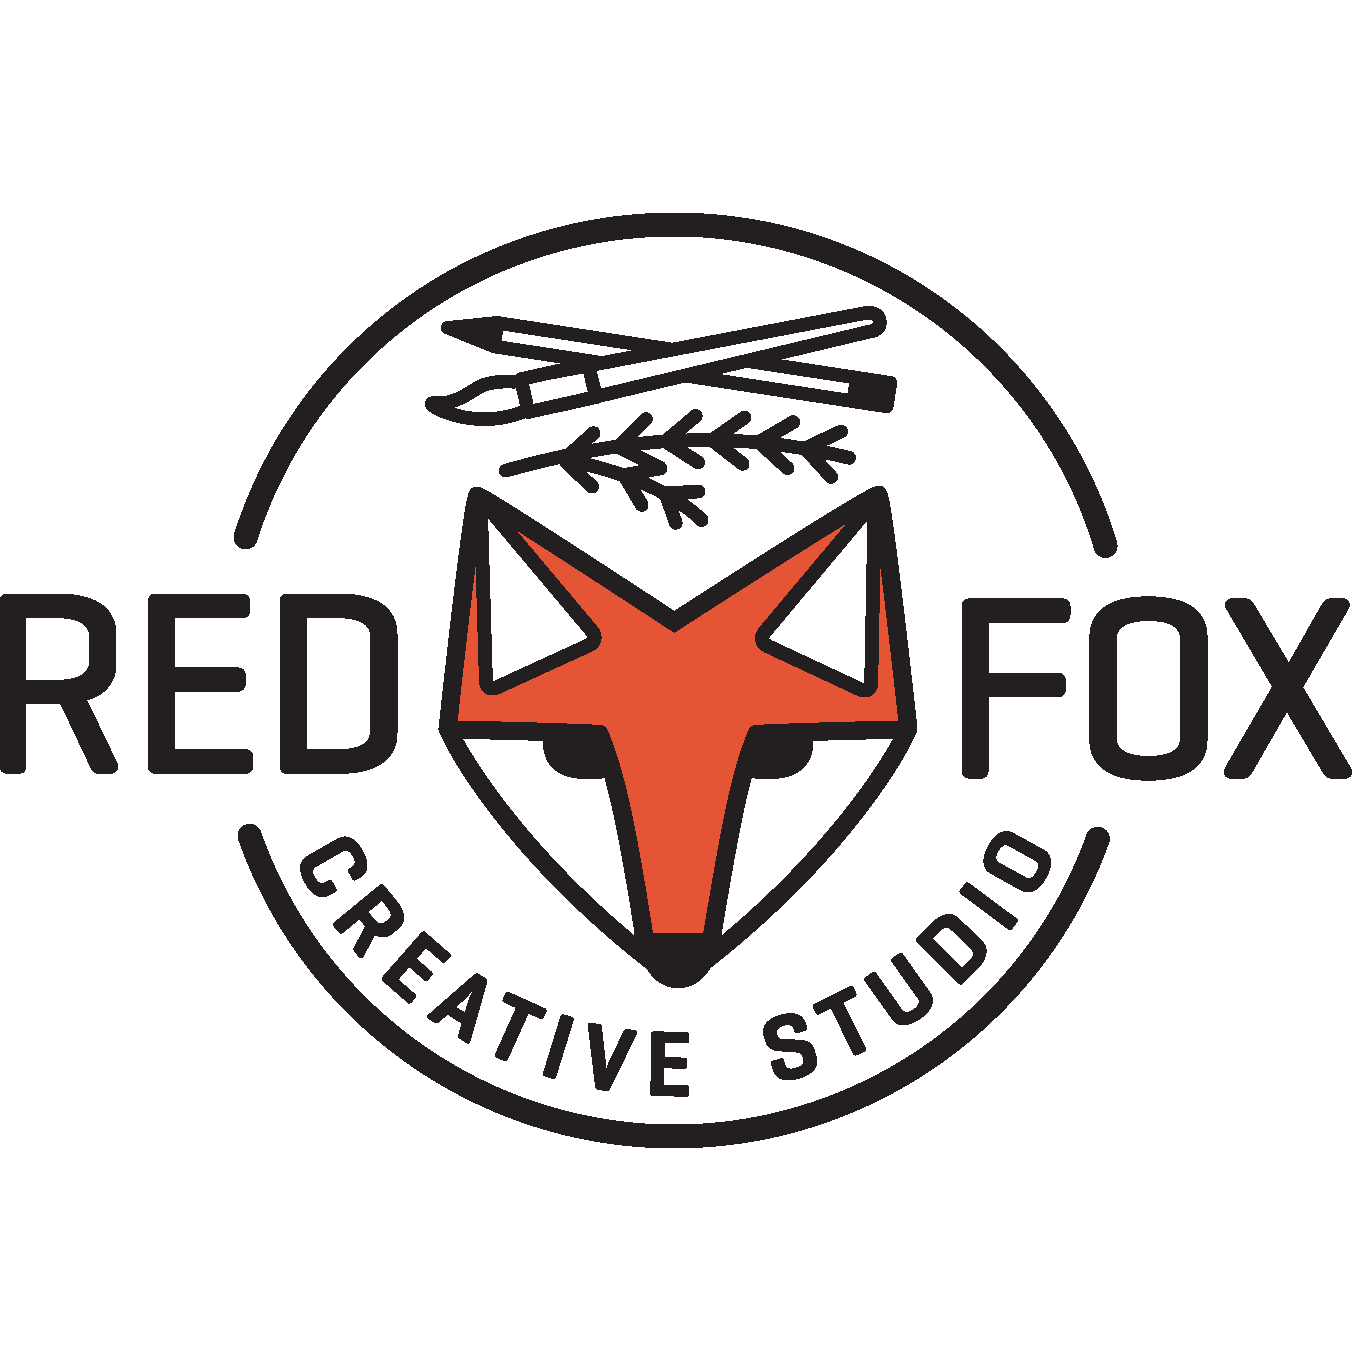 Logo Red Fox Creative Studio.png